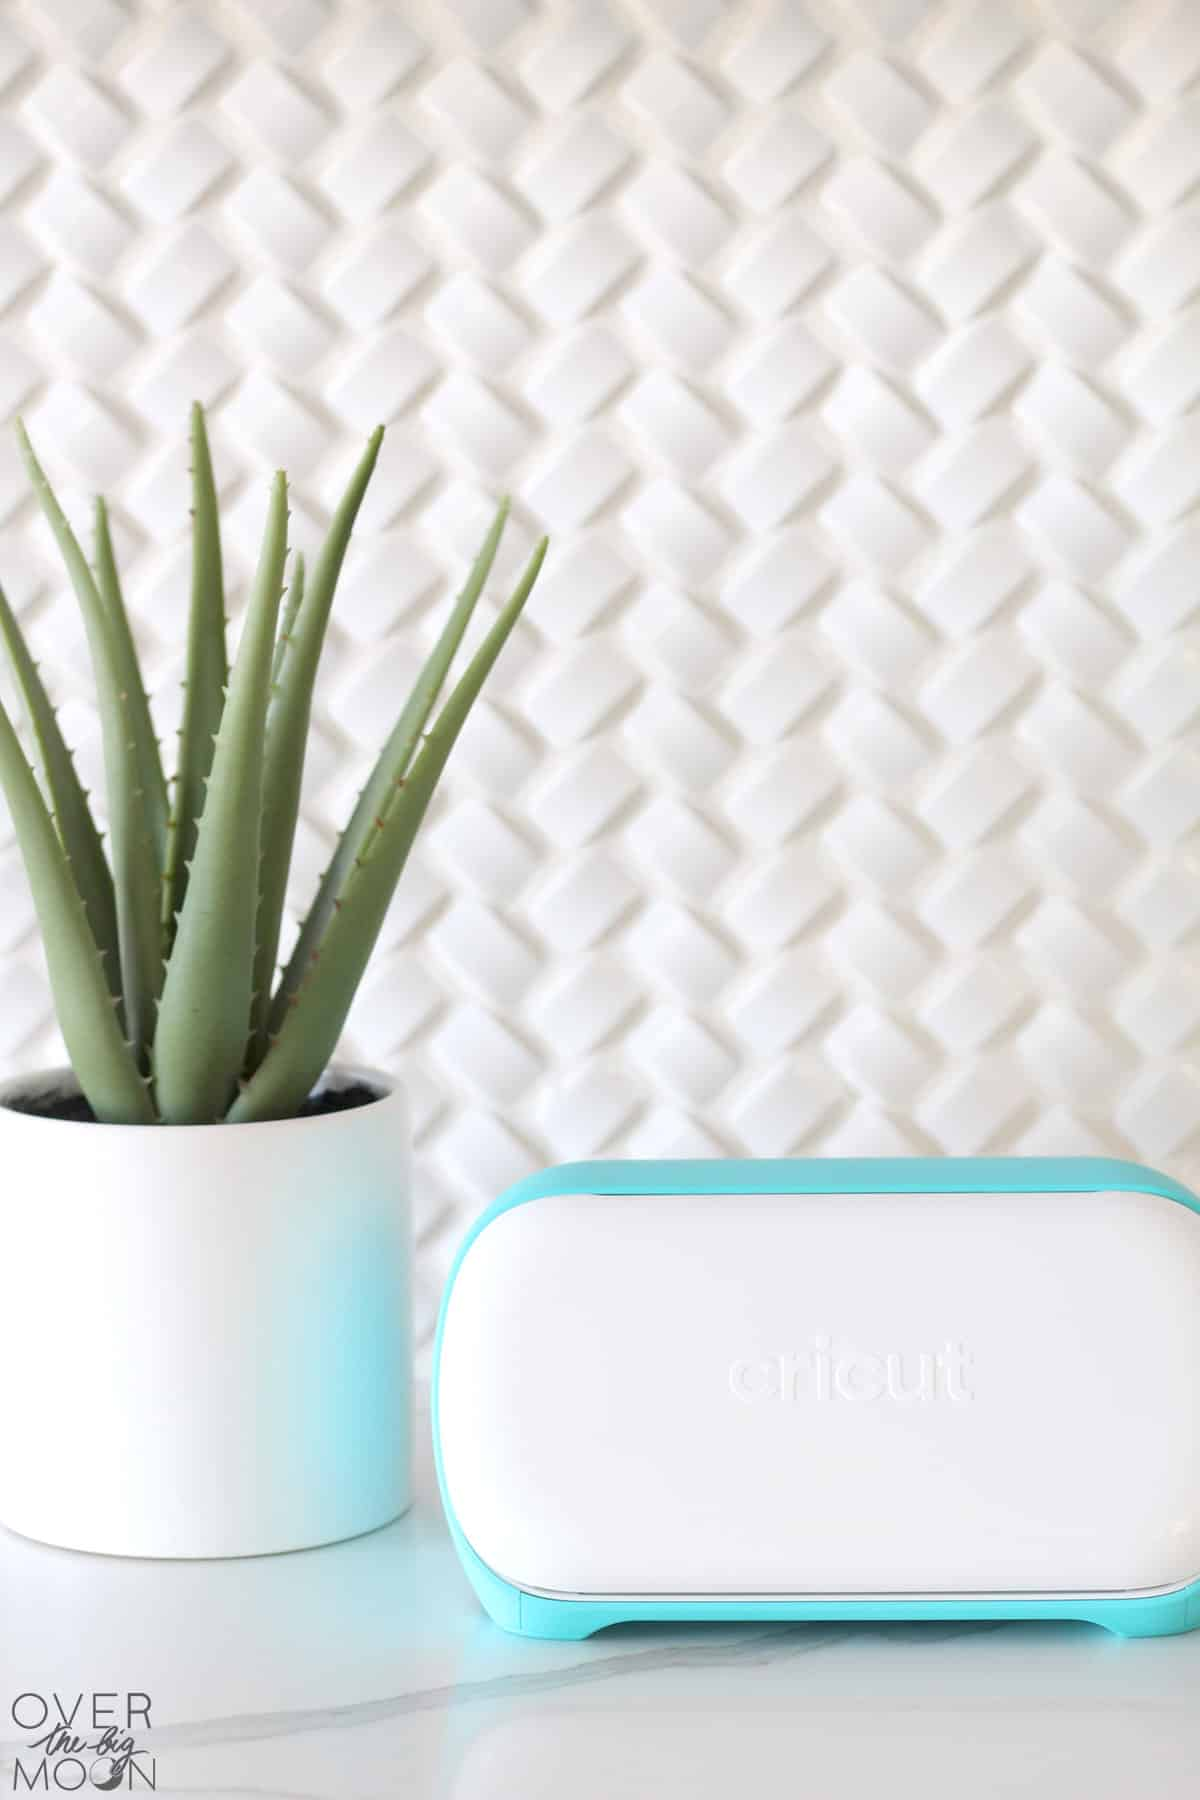 Cricut Joy machine closed on white countertop with an aloe plant next to the machine.